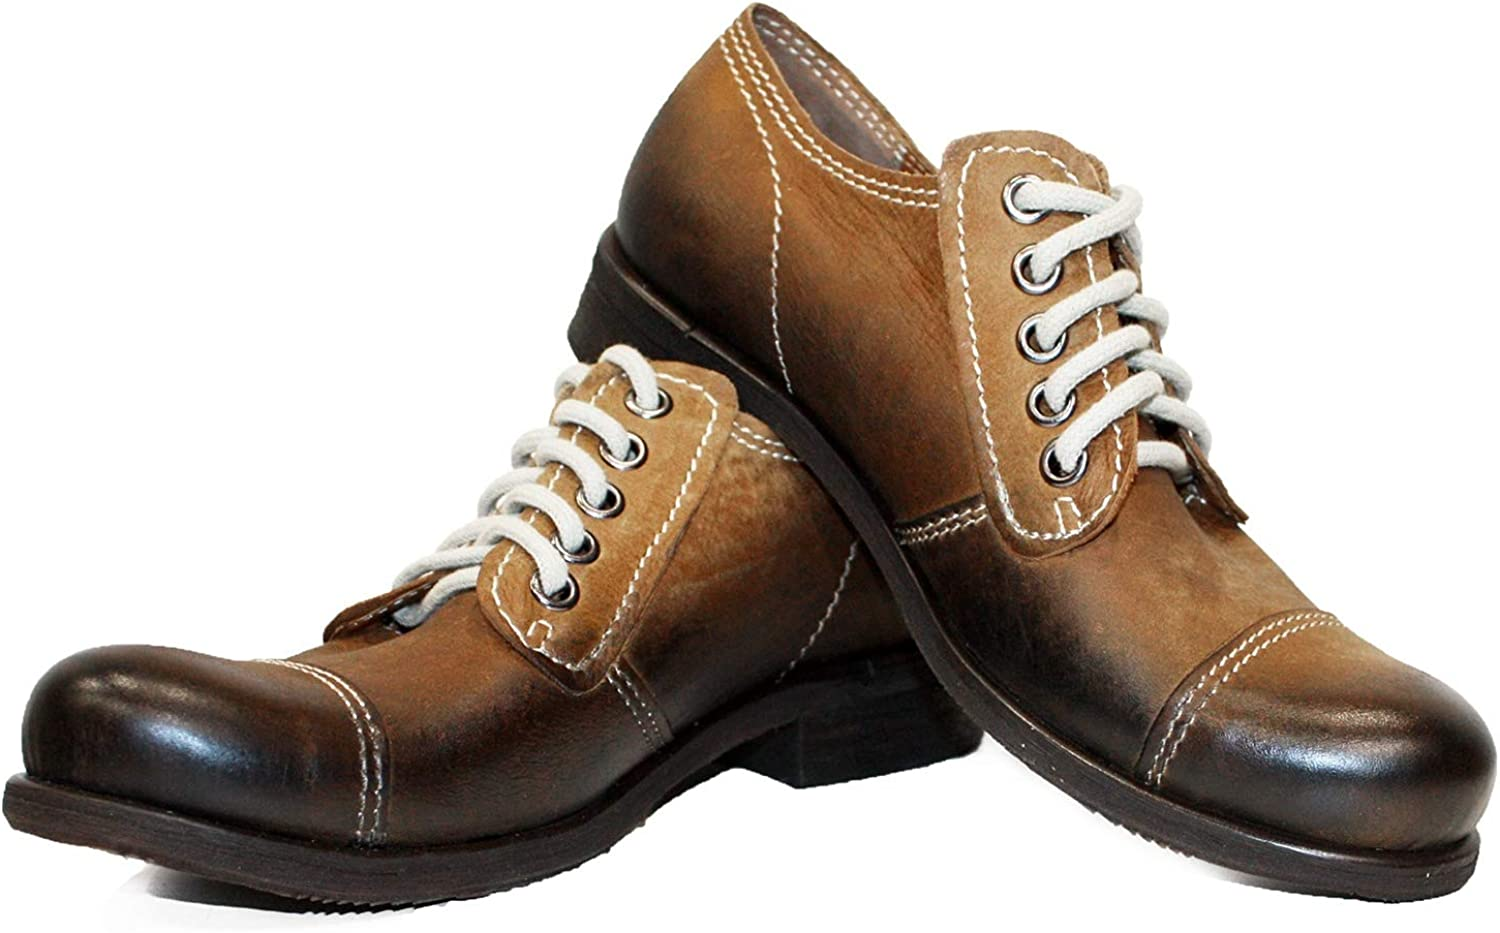 Peppeshoes Modello Jetrello - Handmade Italian Leather Mens color Brown Ankle Boots - Cowhide Hand Painted Leather - Lace-Up